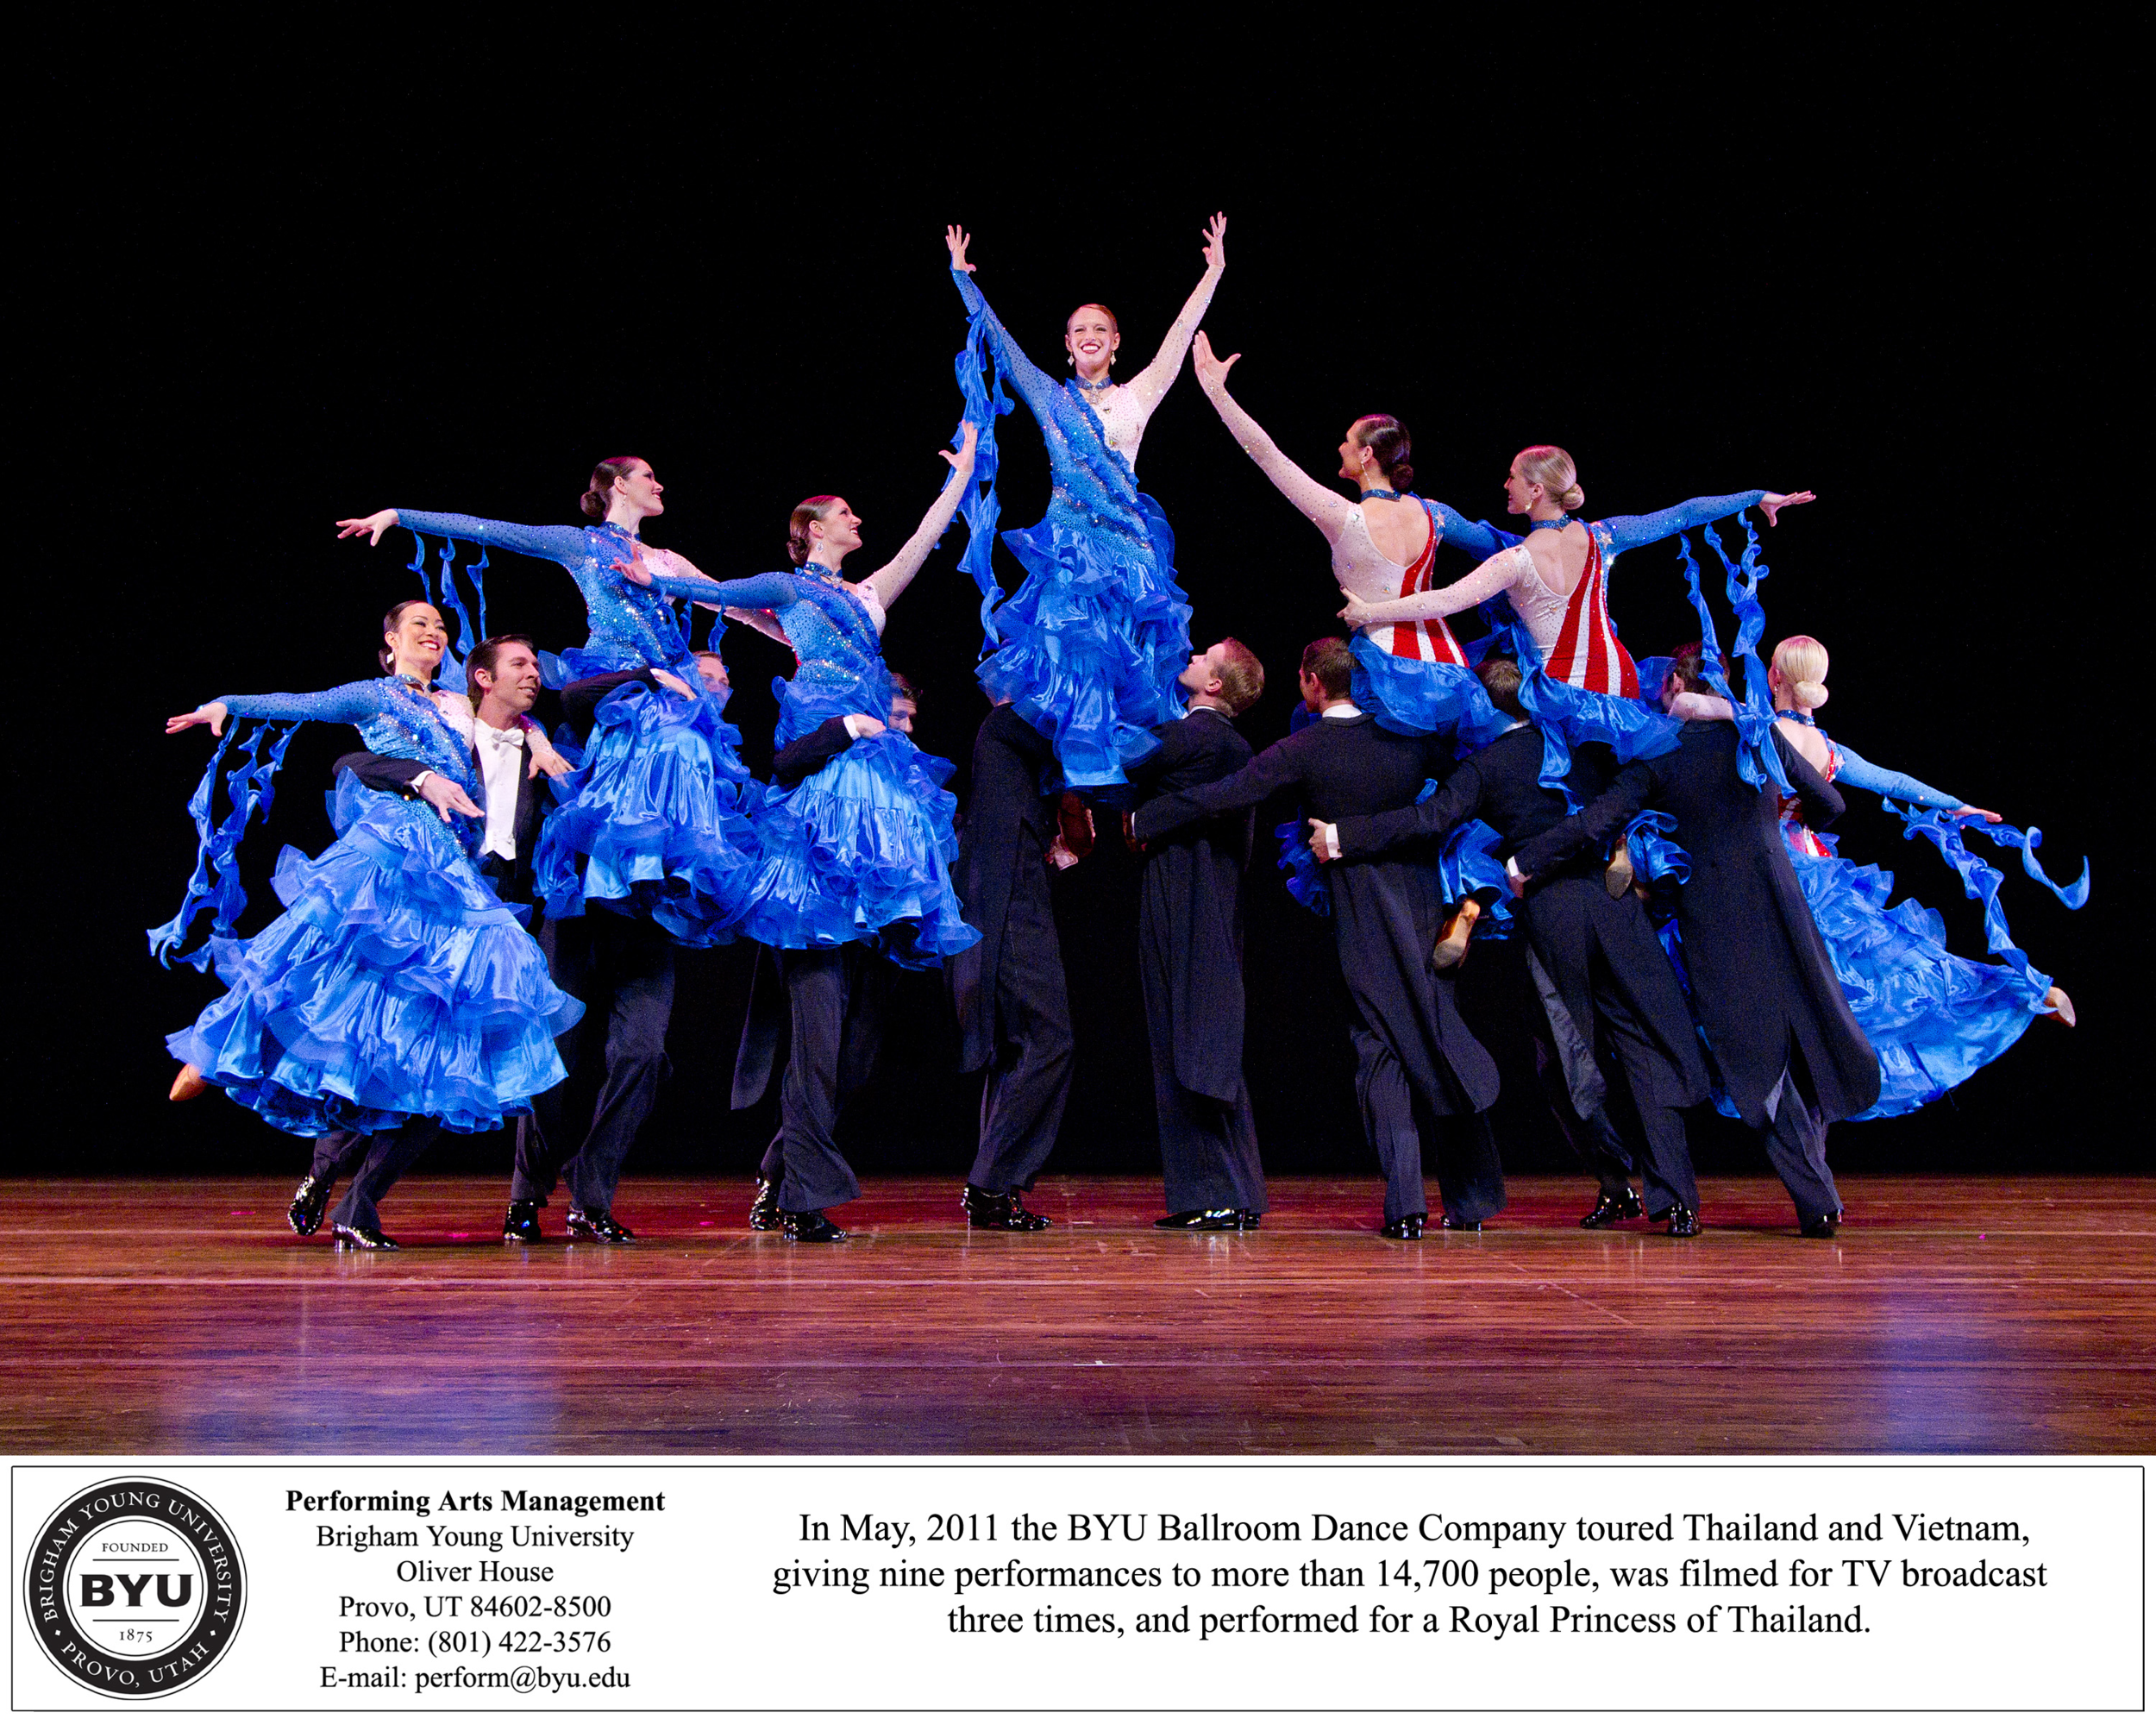 In 2010, the BYU Ballroom Dance Company performed their ballroom medley, Americana, at the British Formation Team Championships in Blackpool, England.